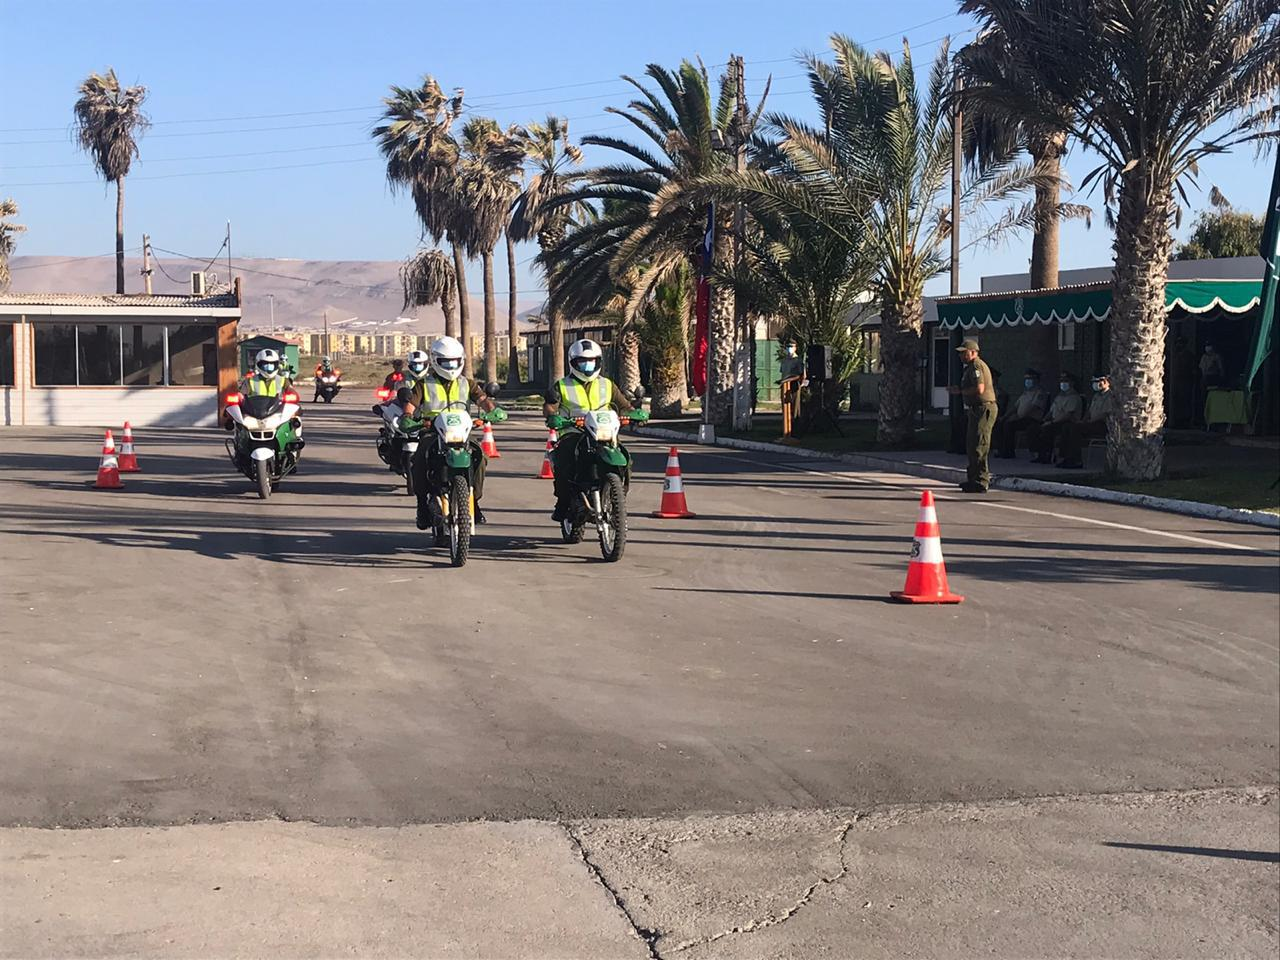 CURSO MOTOS TRANSITO ARICA 3